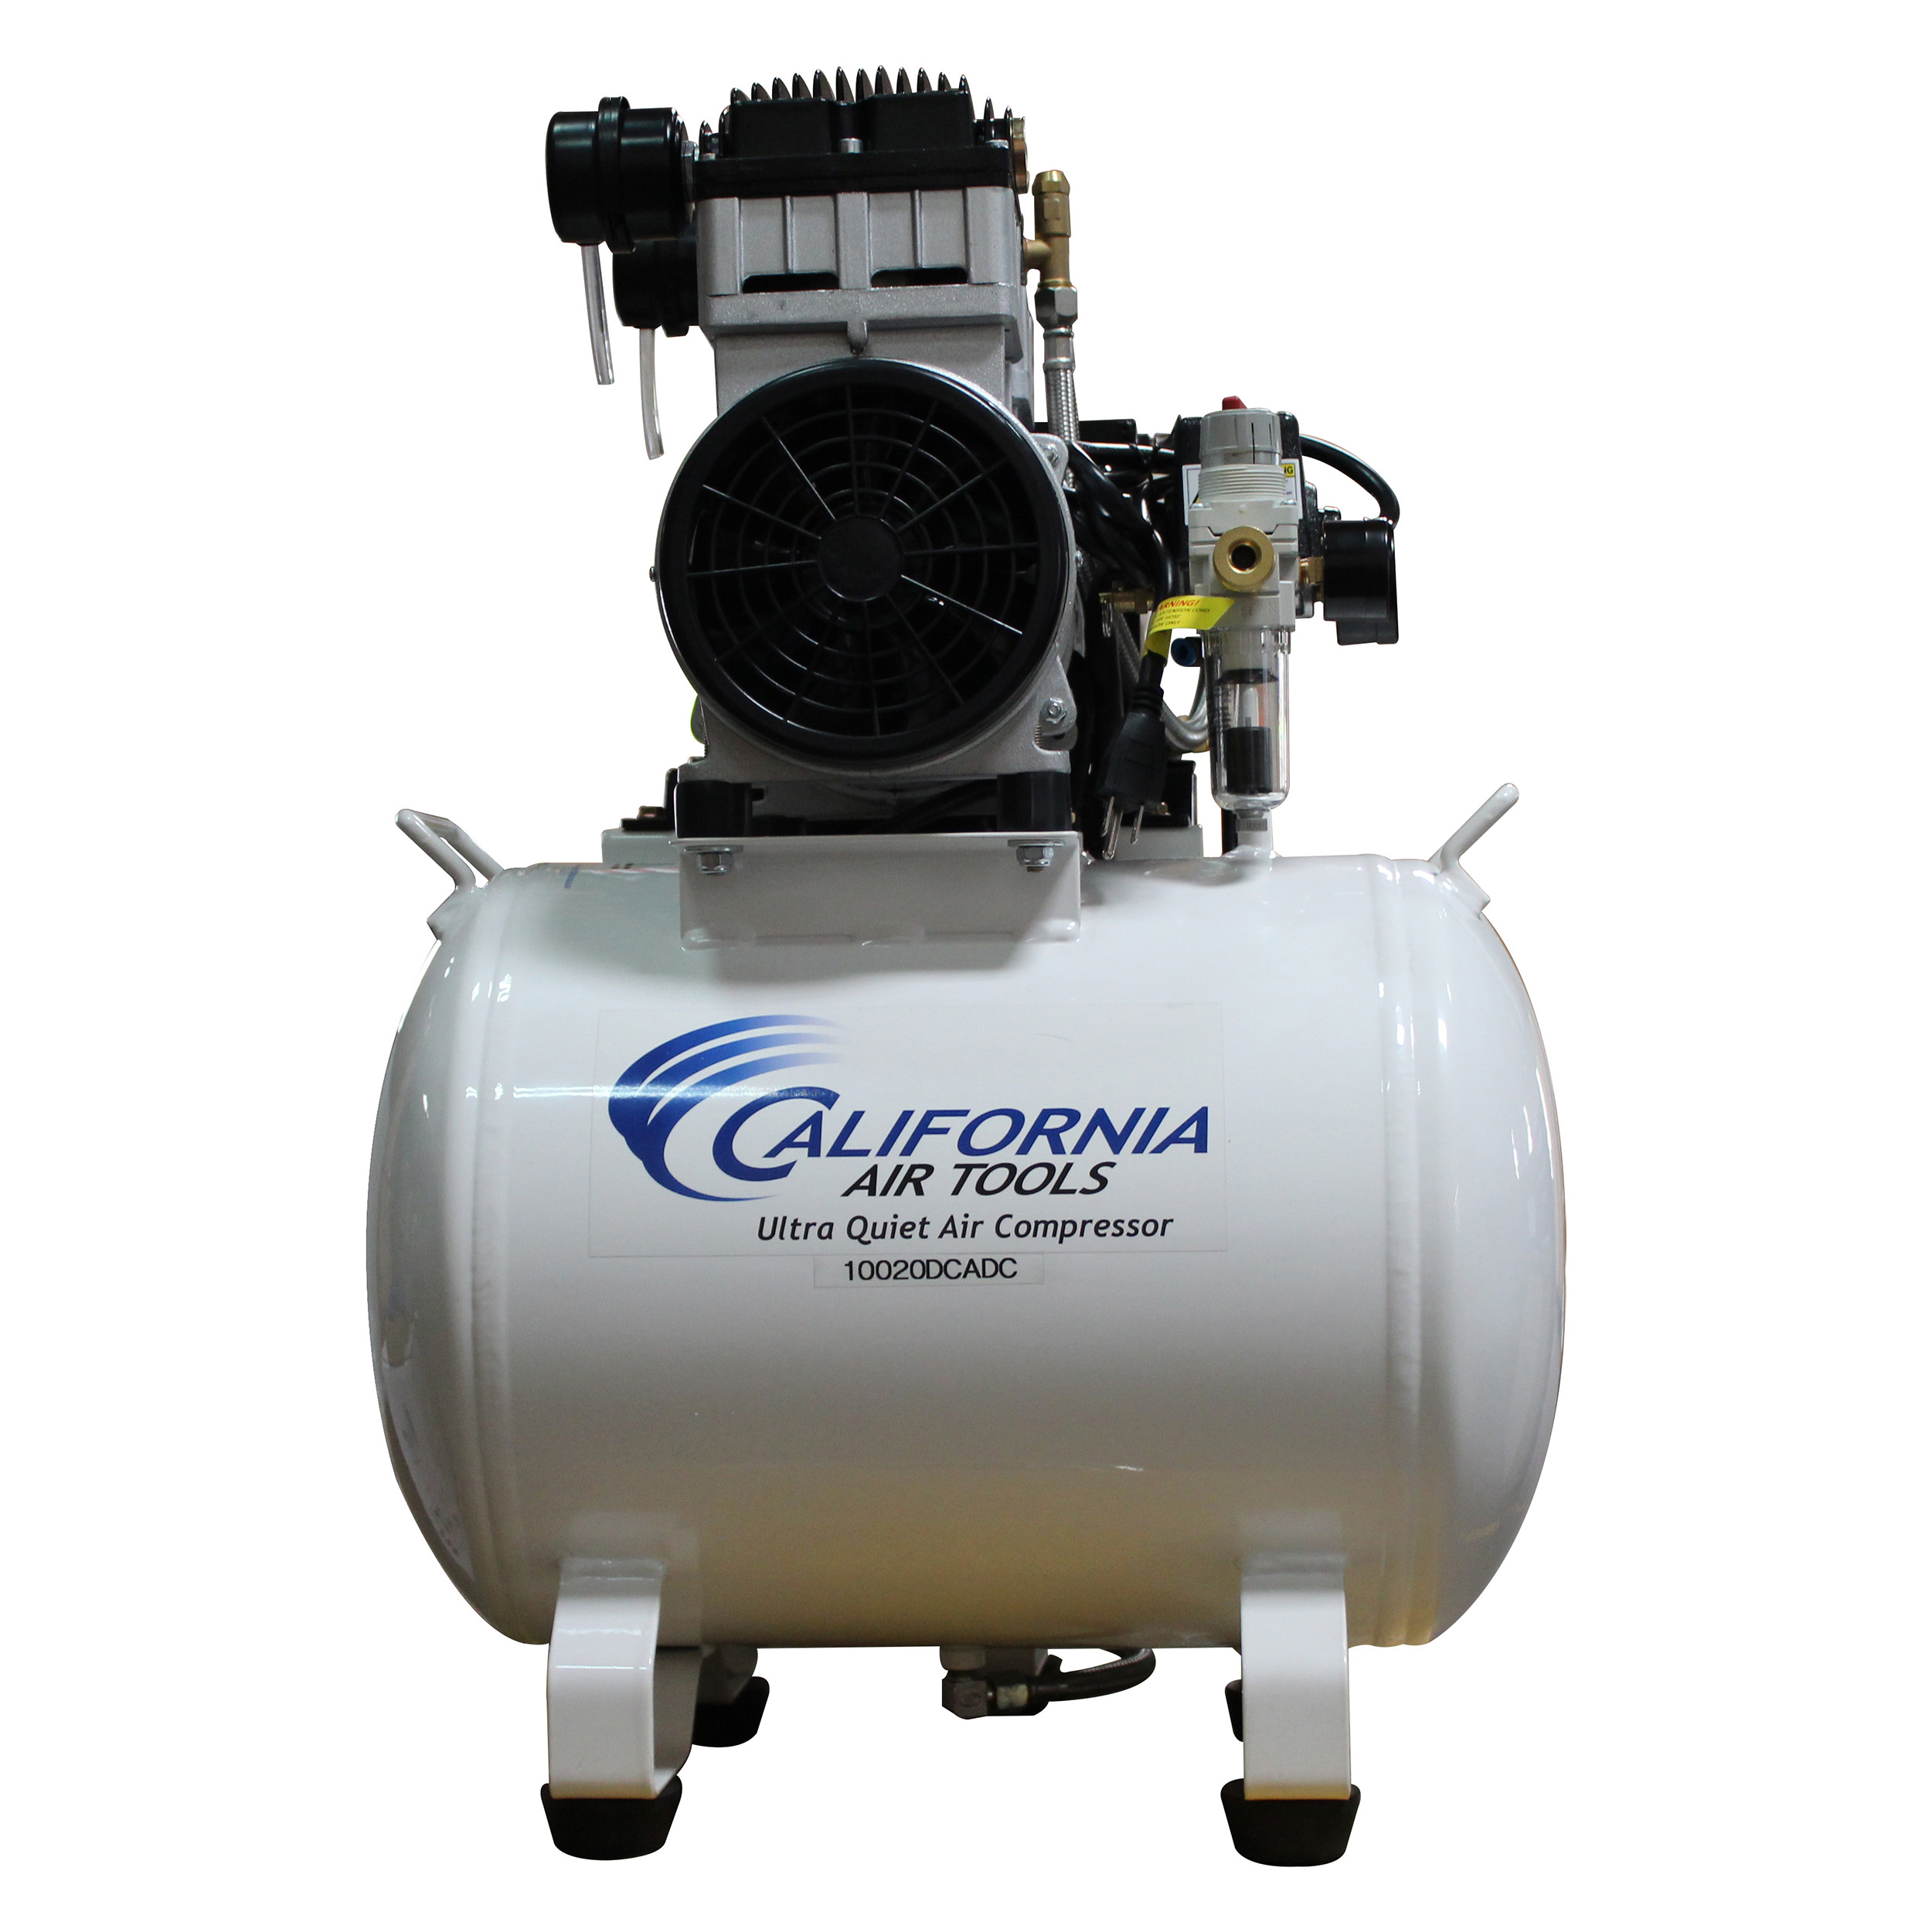 Ultra Quiet and Oil-Free 2 HP, 10 Gallon Steel Tank Air Compressor with Air Drying System